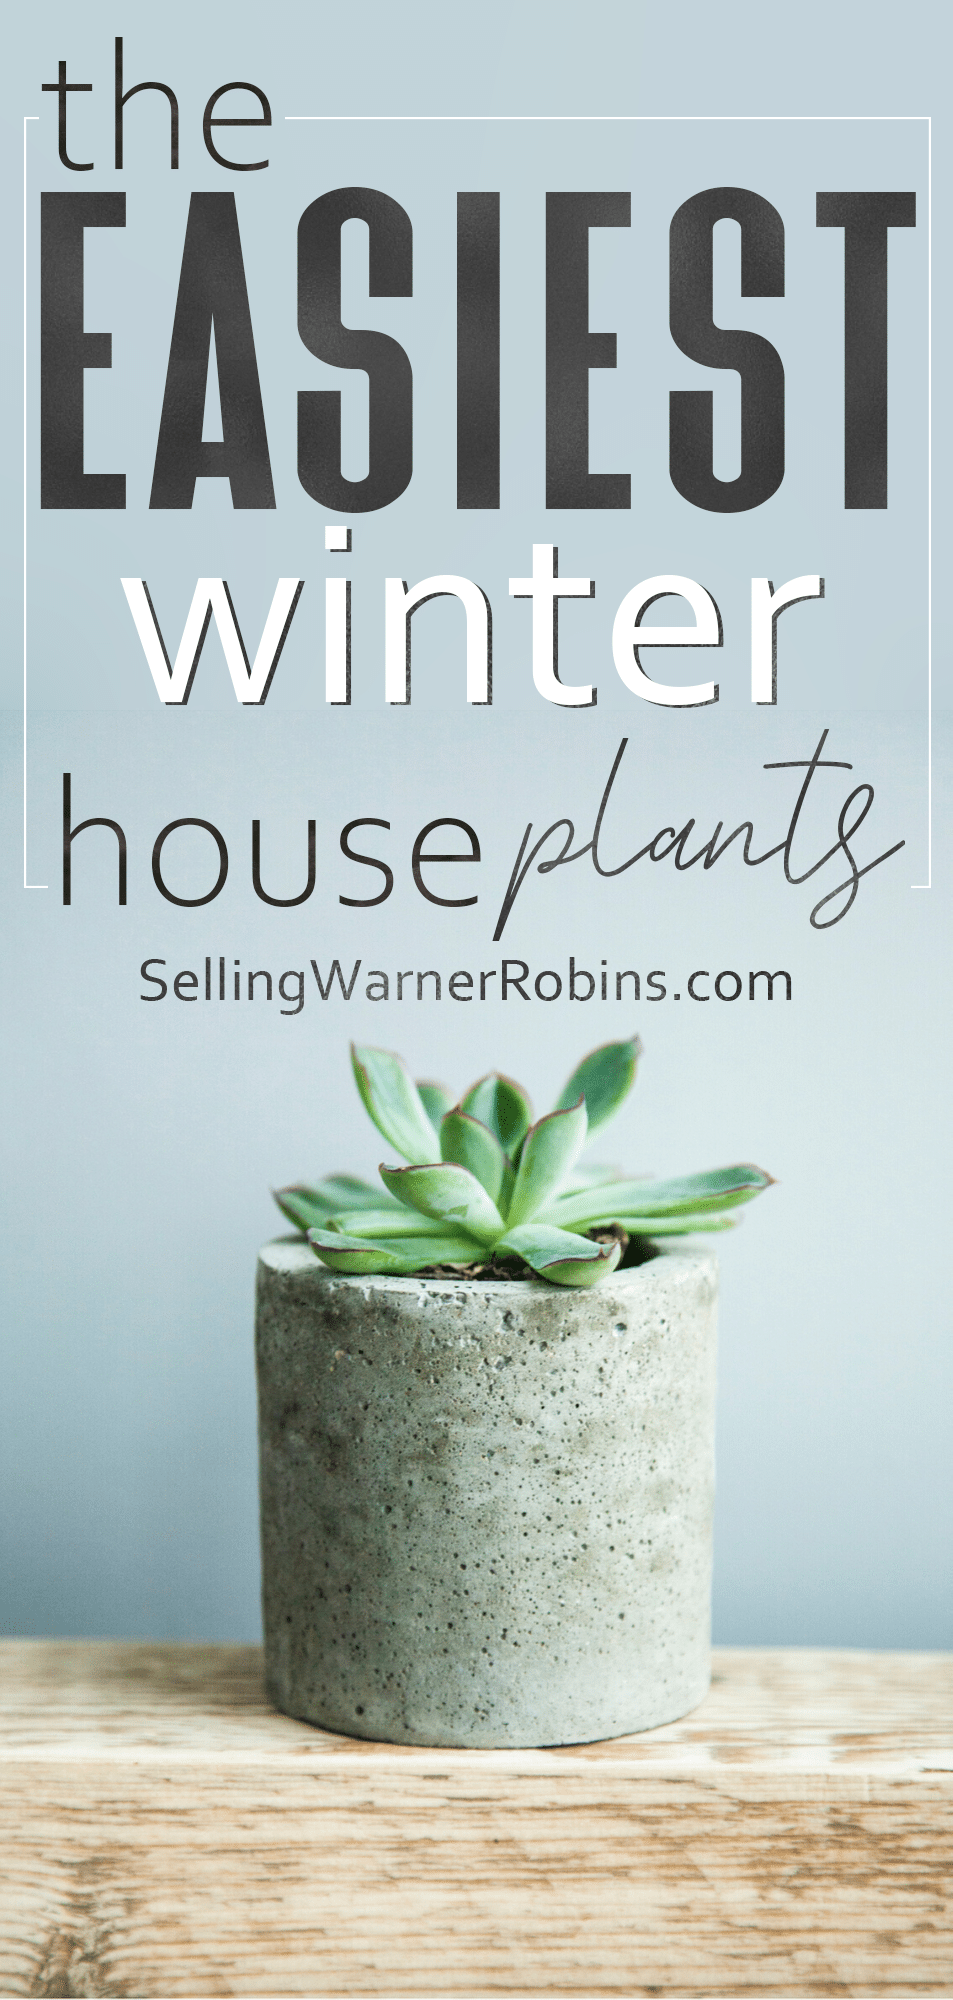 Decorating with house plants is a great way to bring the outdoors inside during the winter. Take a look at the easiest house plants to care for to help get you started! #realestate #houseplants #houseplantsindoor #plantdecor